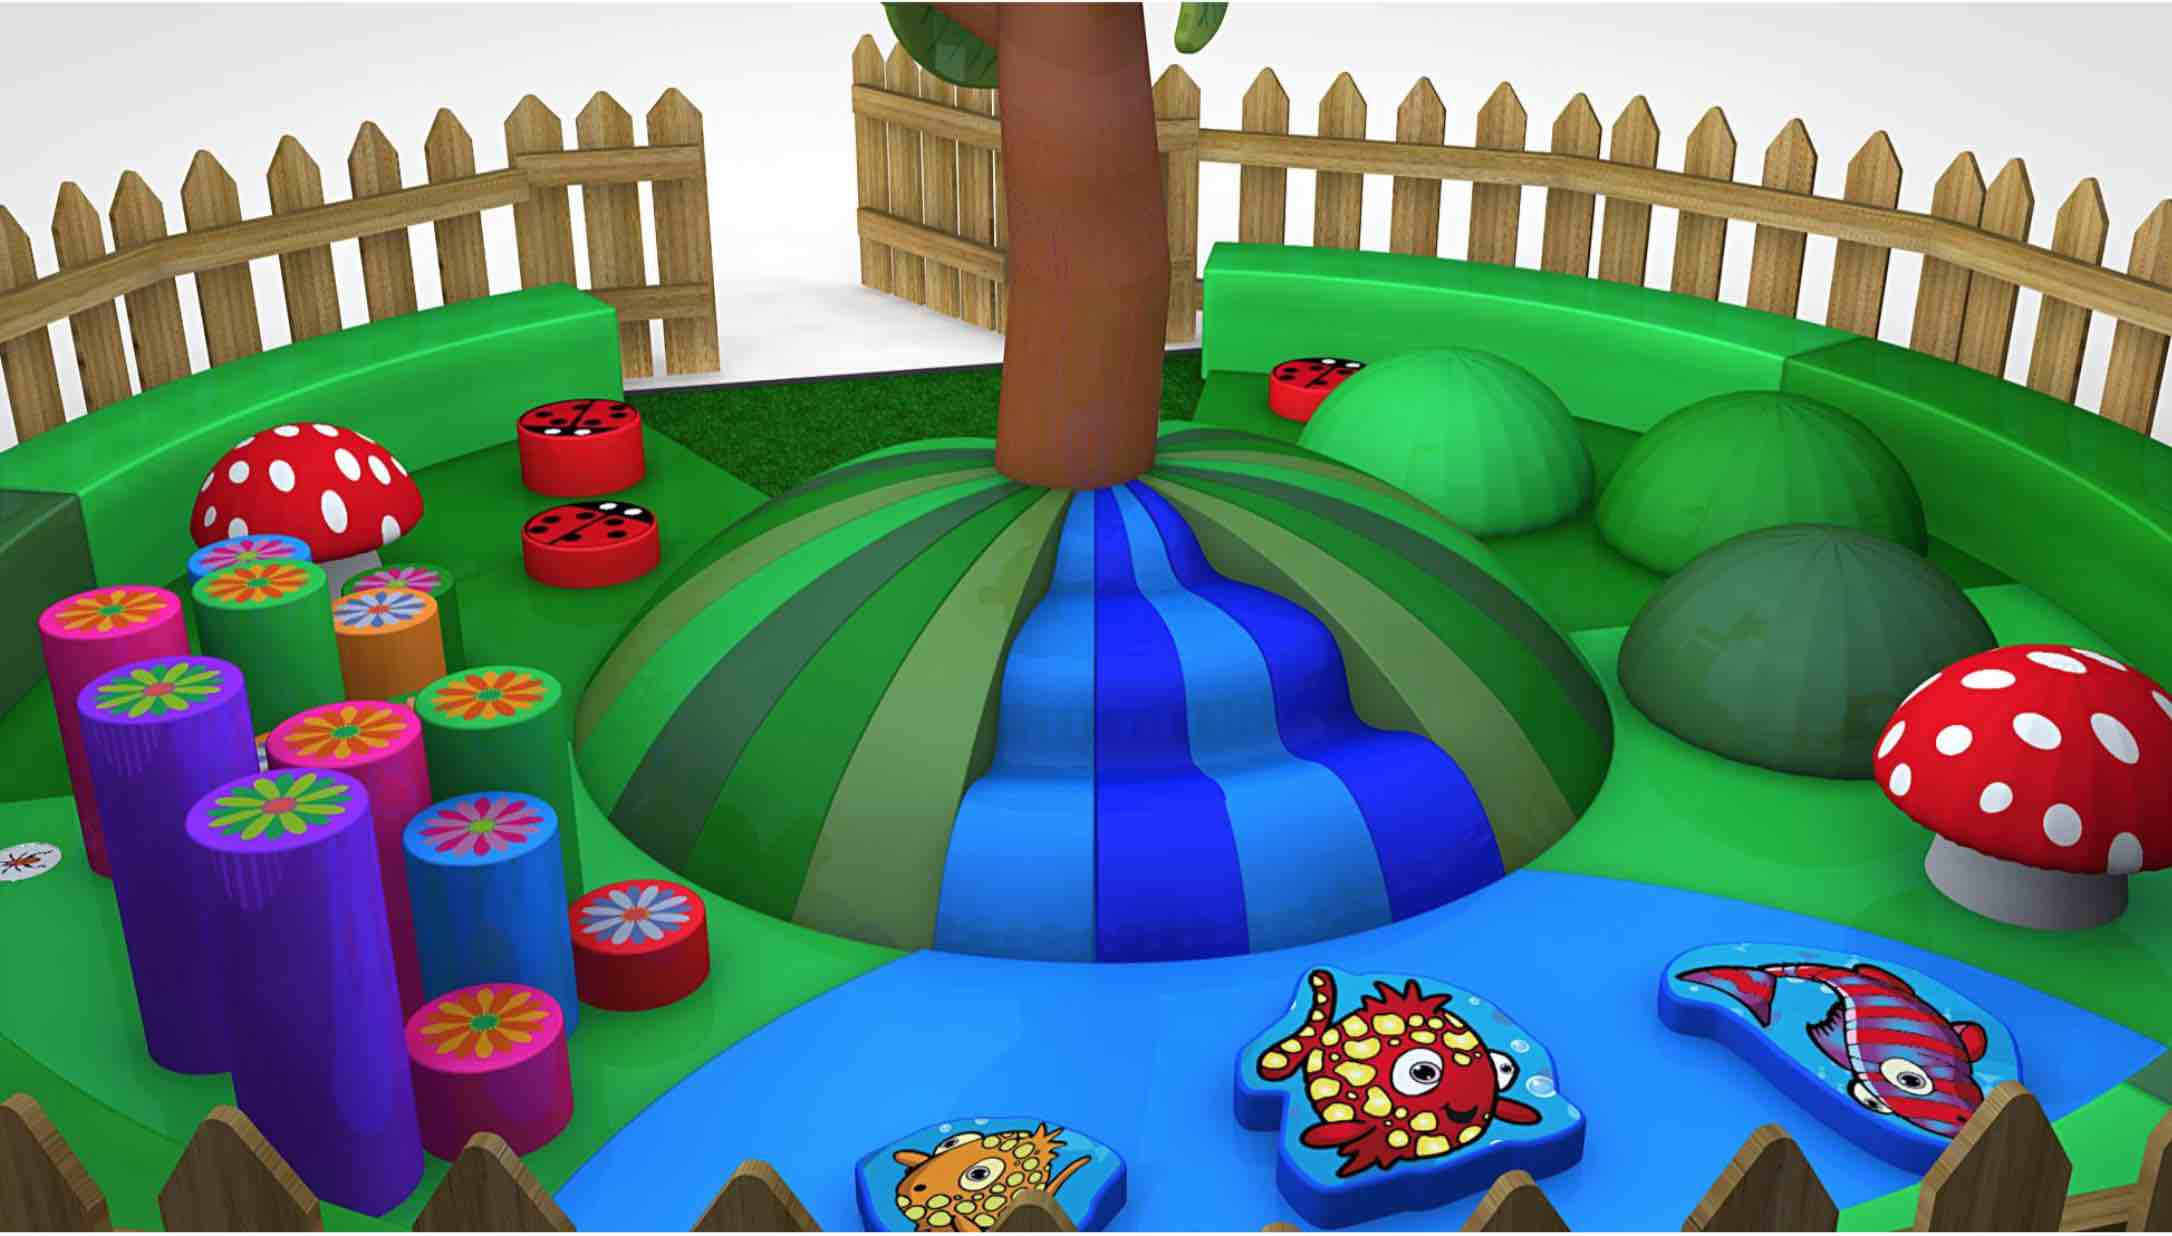 Tots+and+Toddlers+Tigerplay+Design+ex1_4.jpg